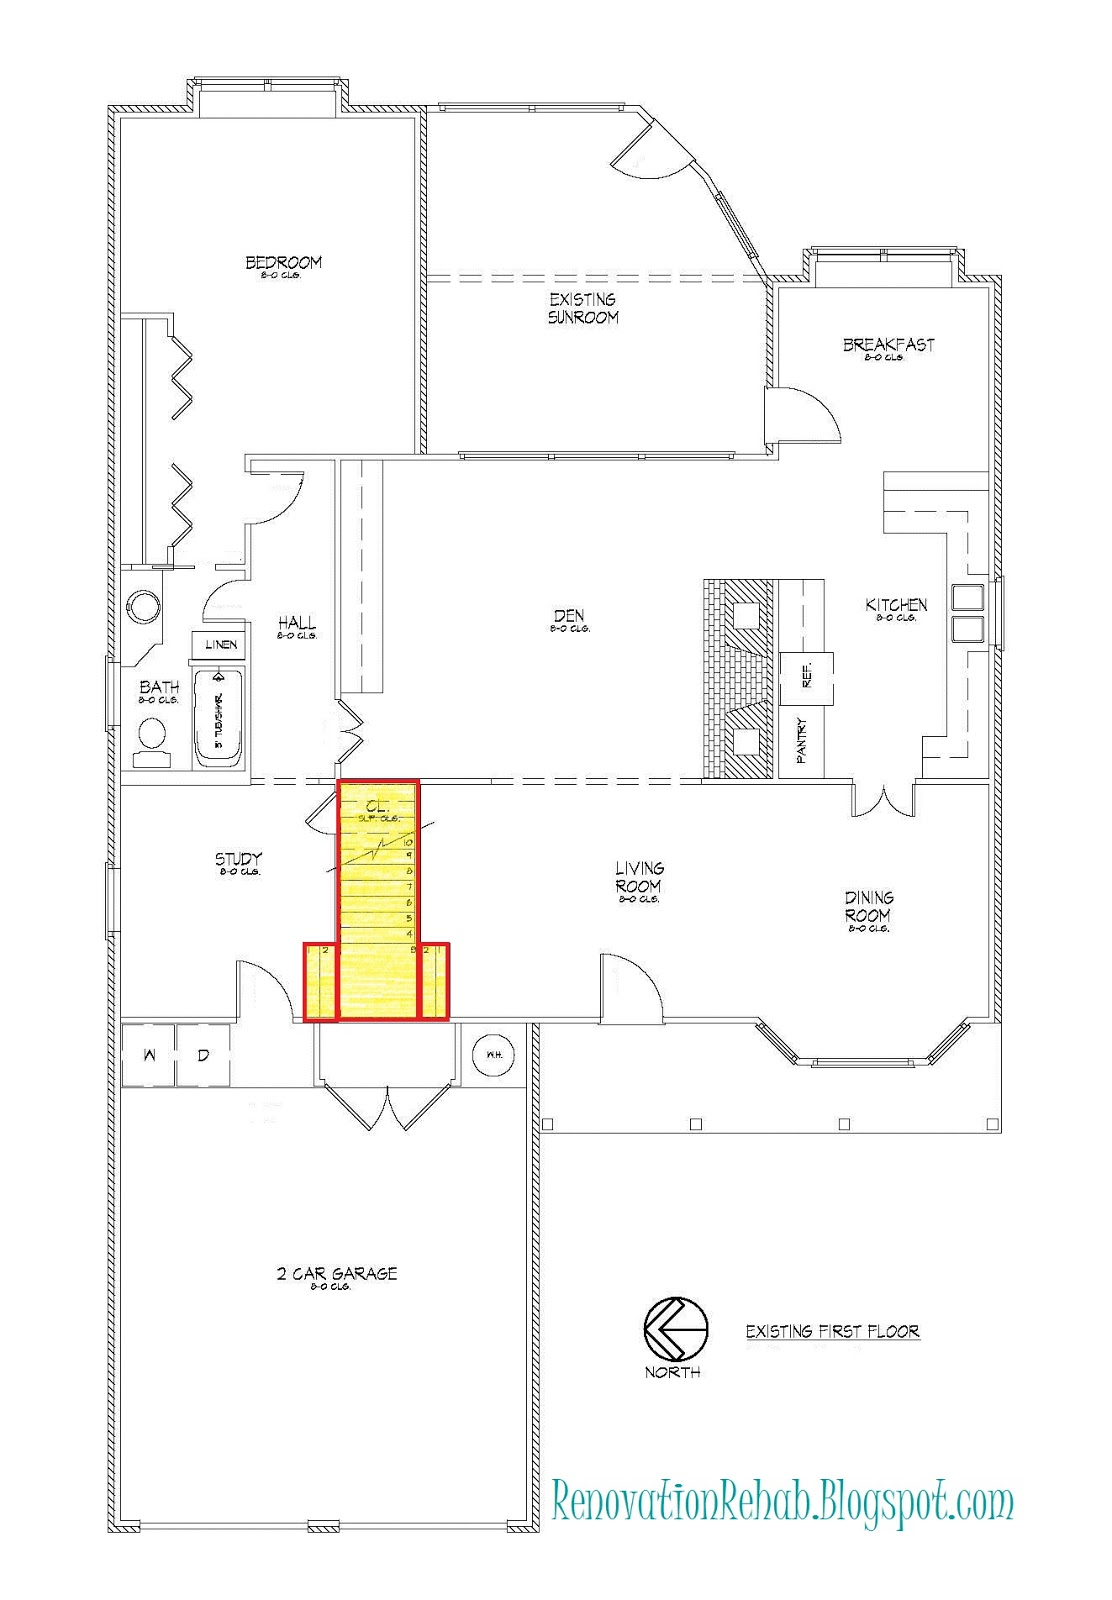 Renovation Rehab Replacing The Staircase From H E Double Hockey Diagram Classic Stairs And Remodeling Here Is Our Original Floor Plan That Shows Location Of Before Started They Are Highlighted In Yellow